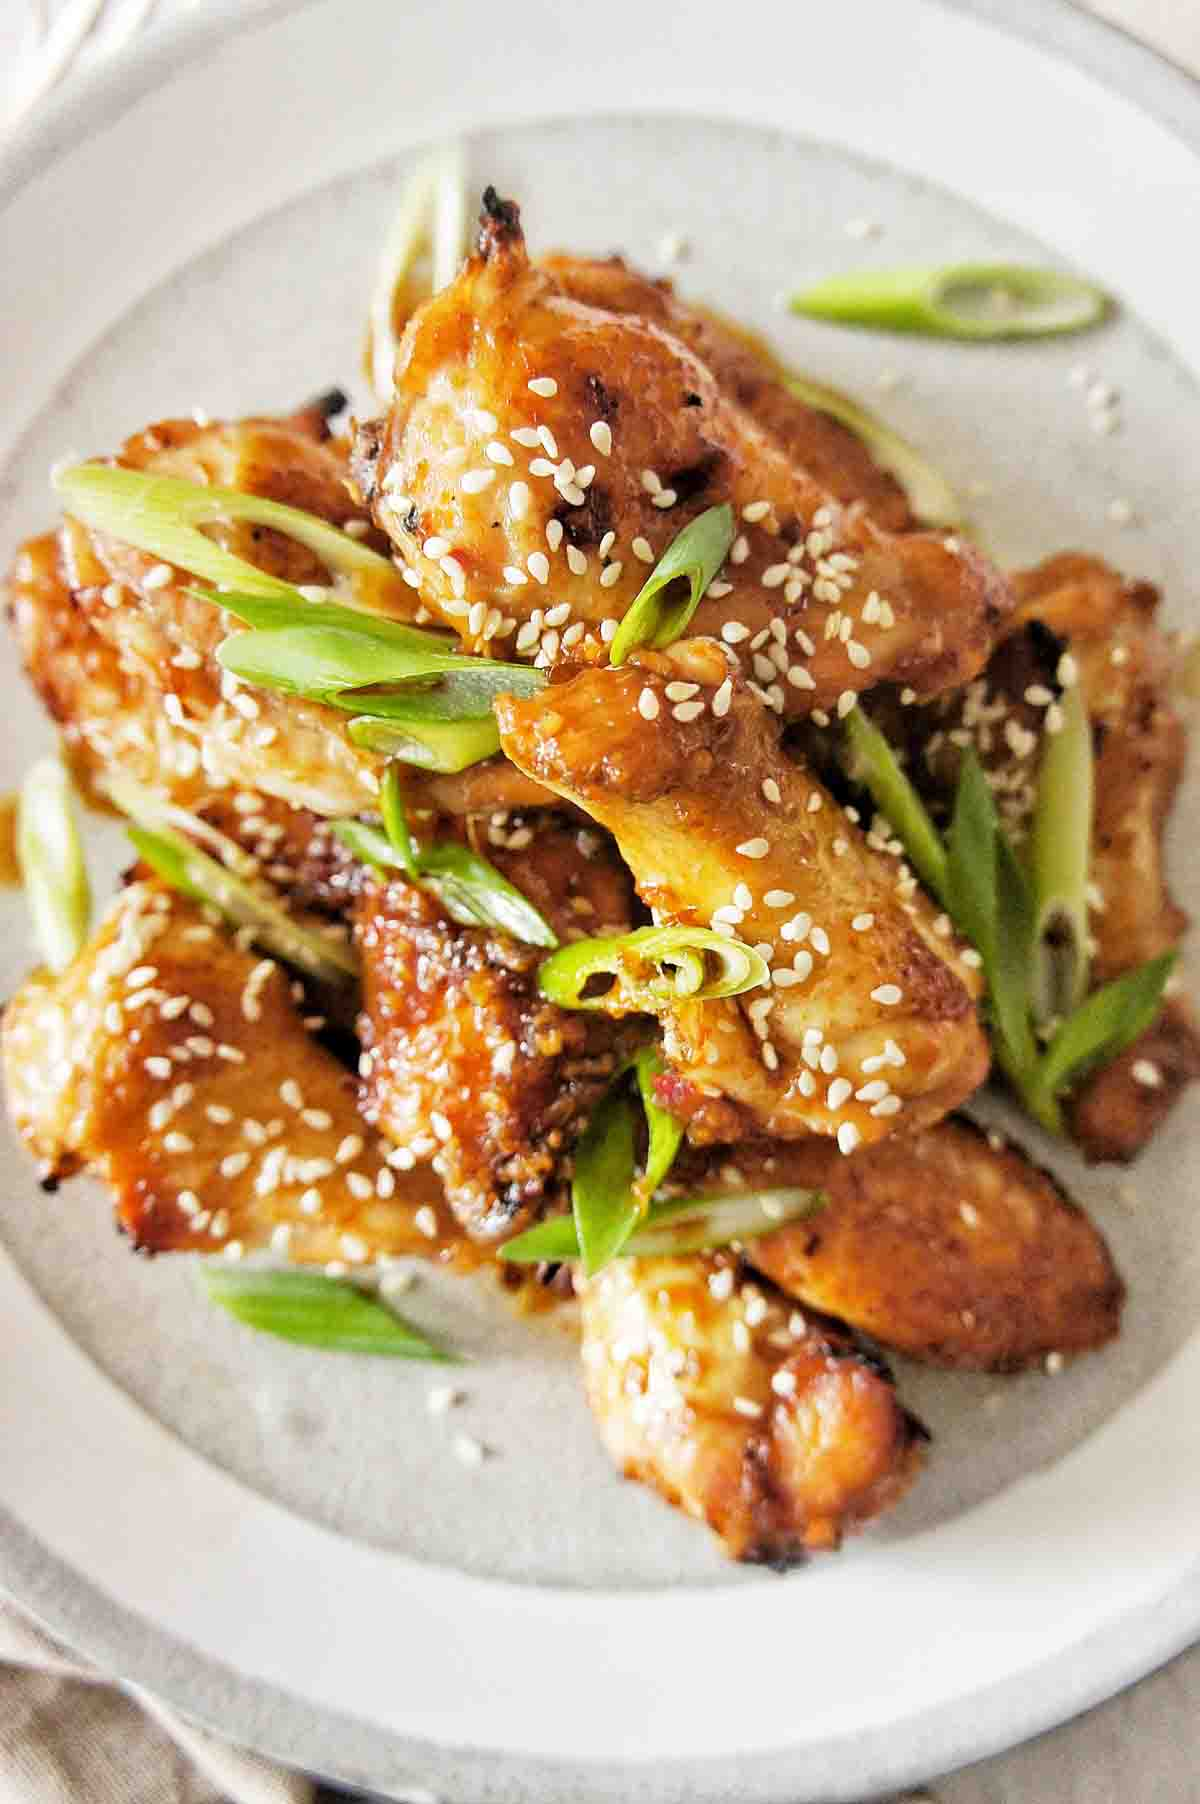 Photo from above Honey Soy Chicken Wings on a grey plate